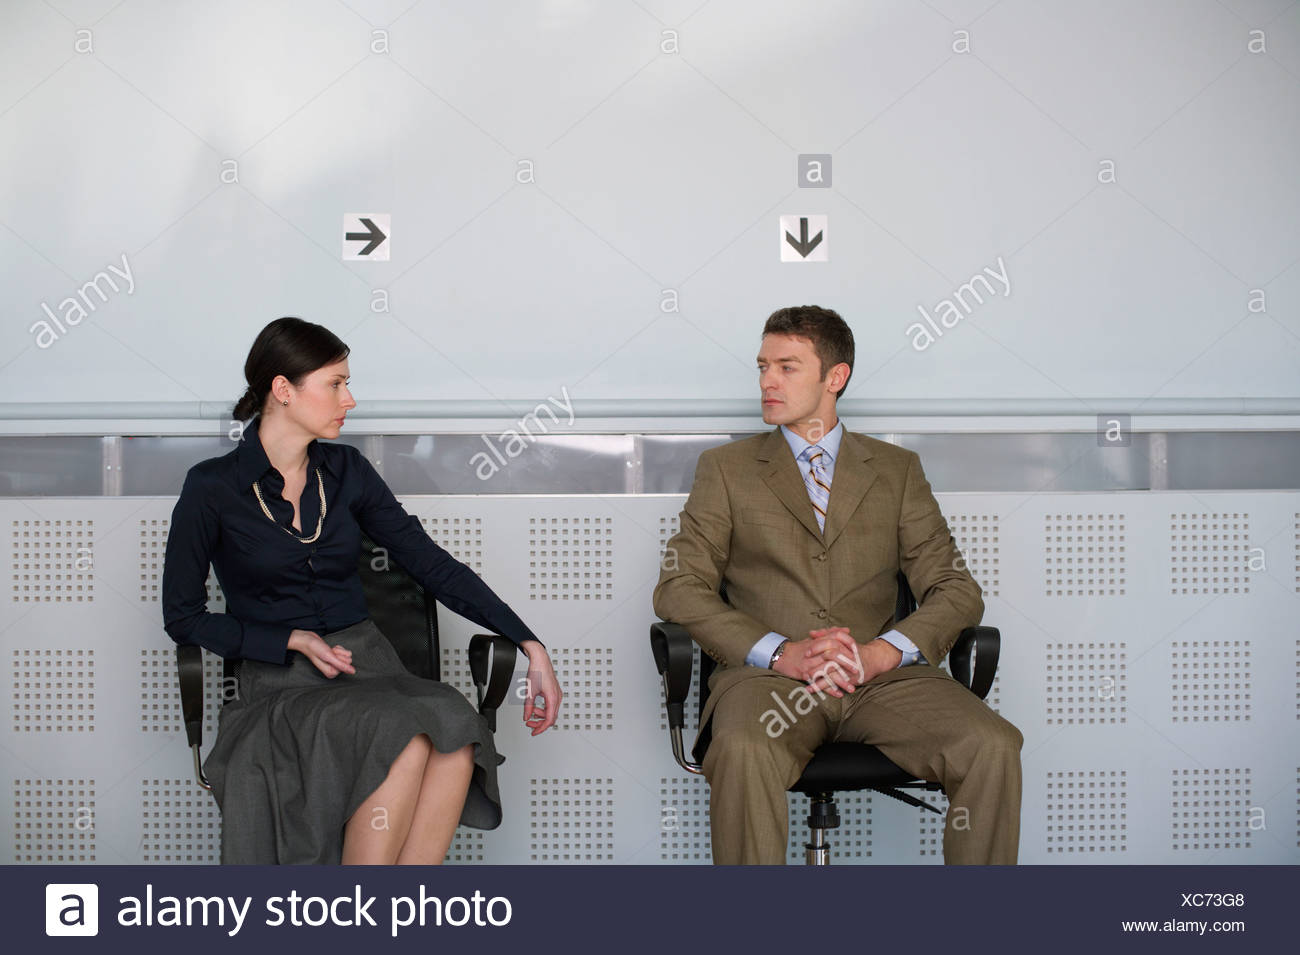 Business couple sitting on chairs - Stock Image